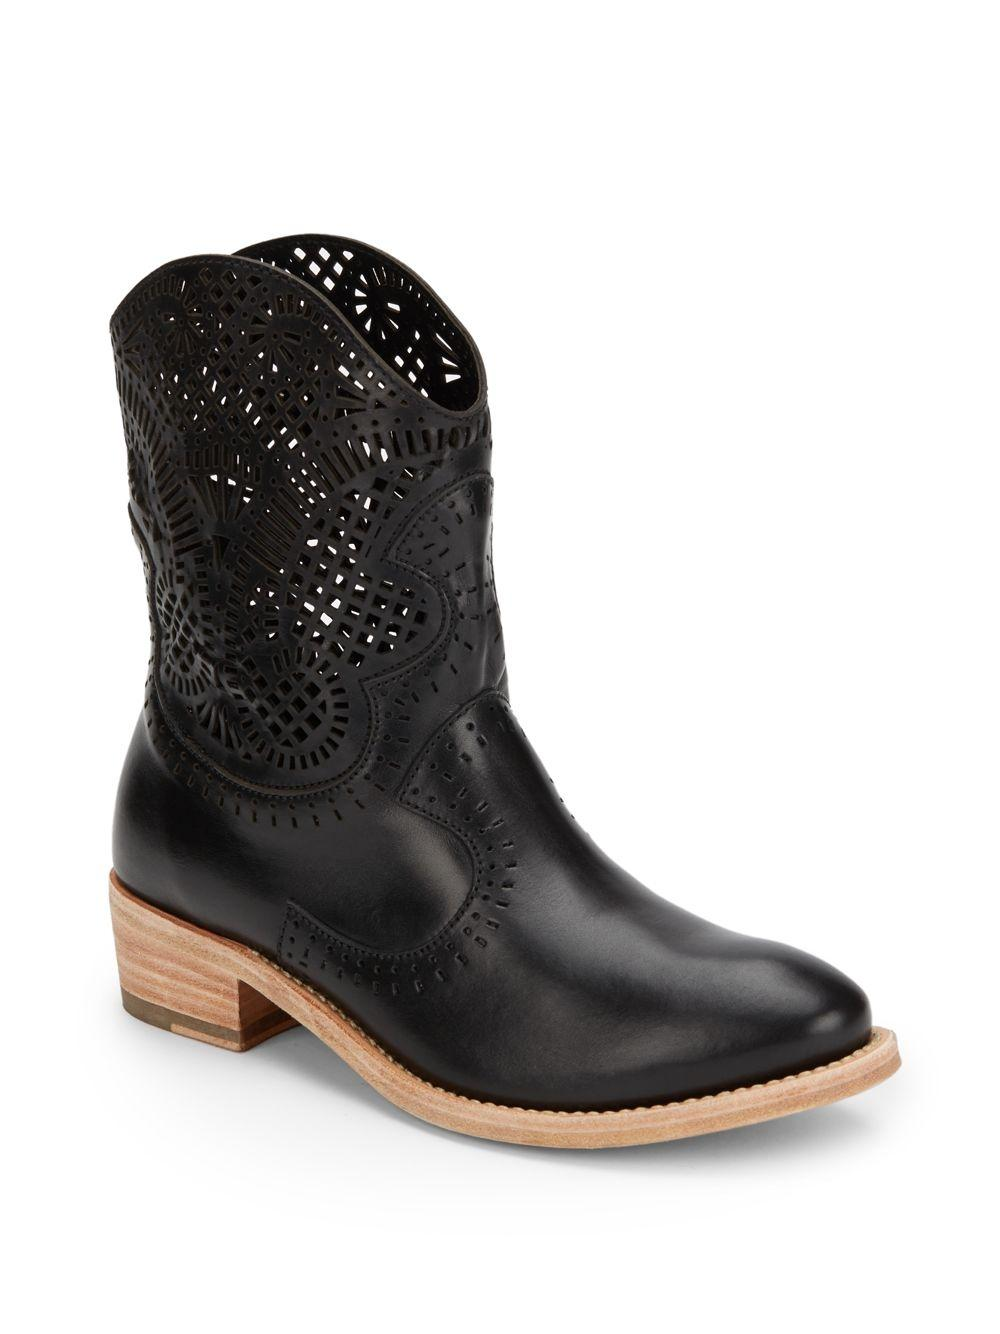 Sergio Rossi Leather Western Boots hgsWXNQVS